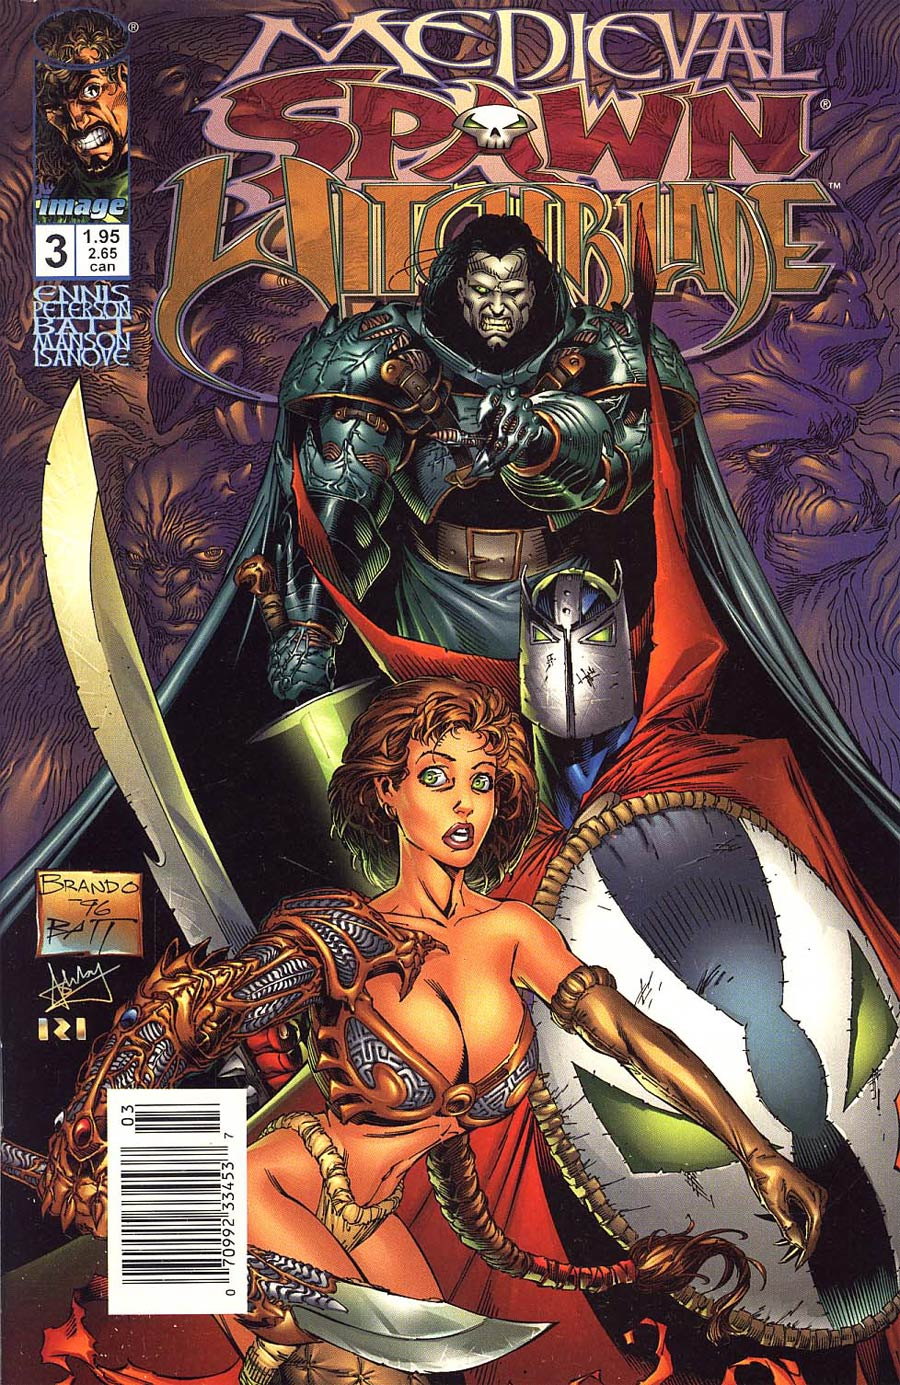 Medieval Spawn Witchblade #3 Cover B Newsstand